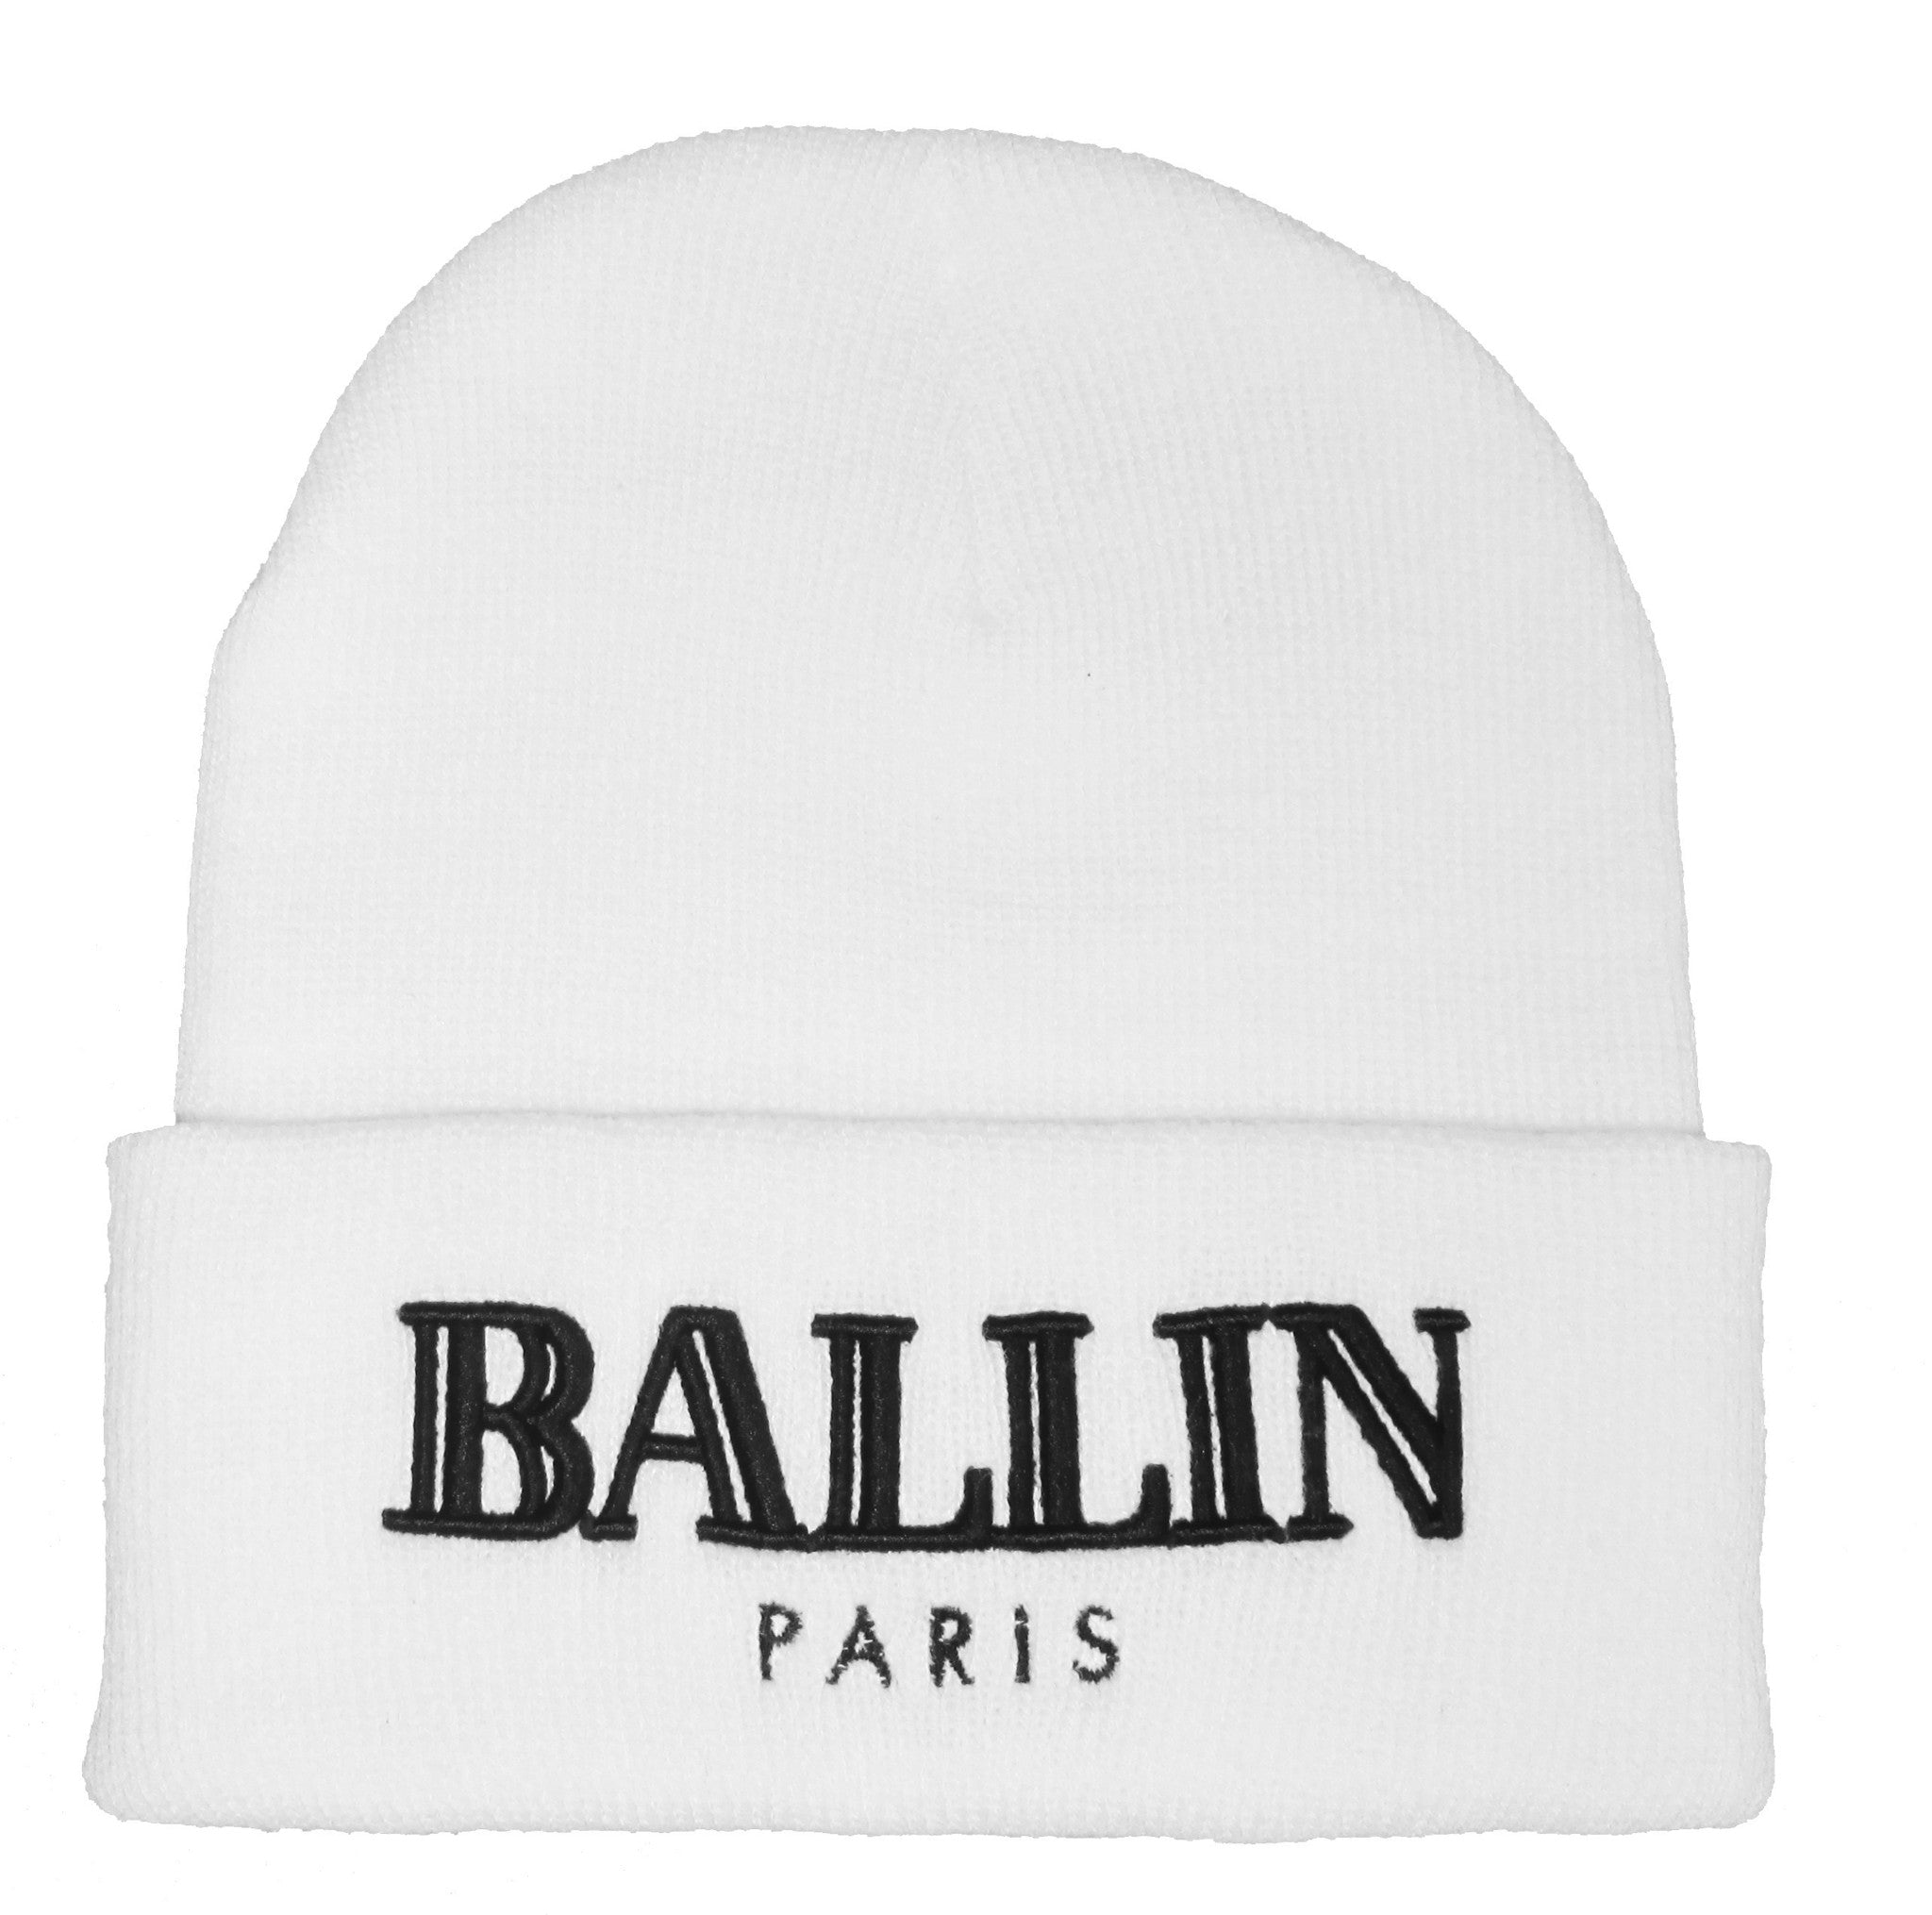 Alex & Chloe White Beanie With Ballin Paris Embroidered In Black